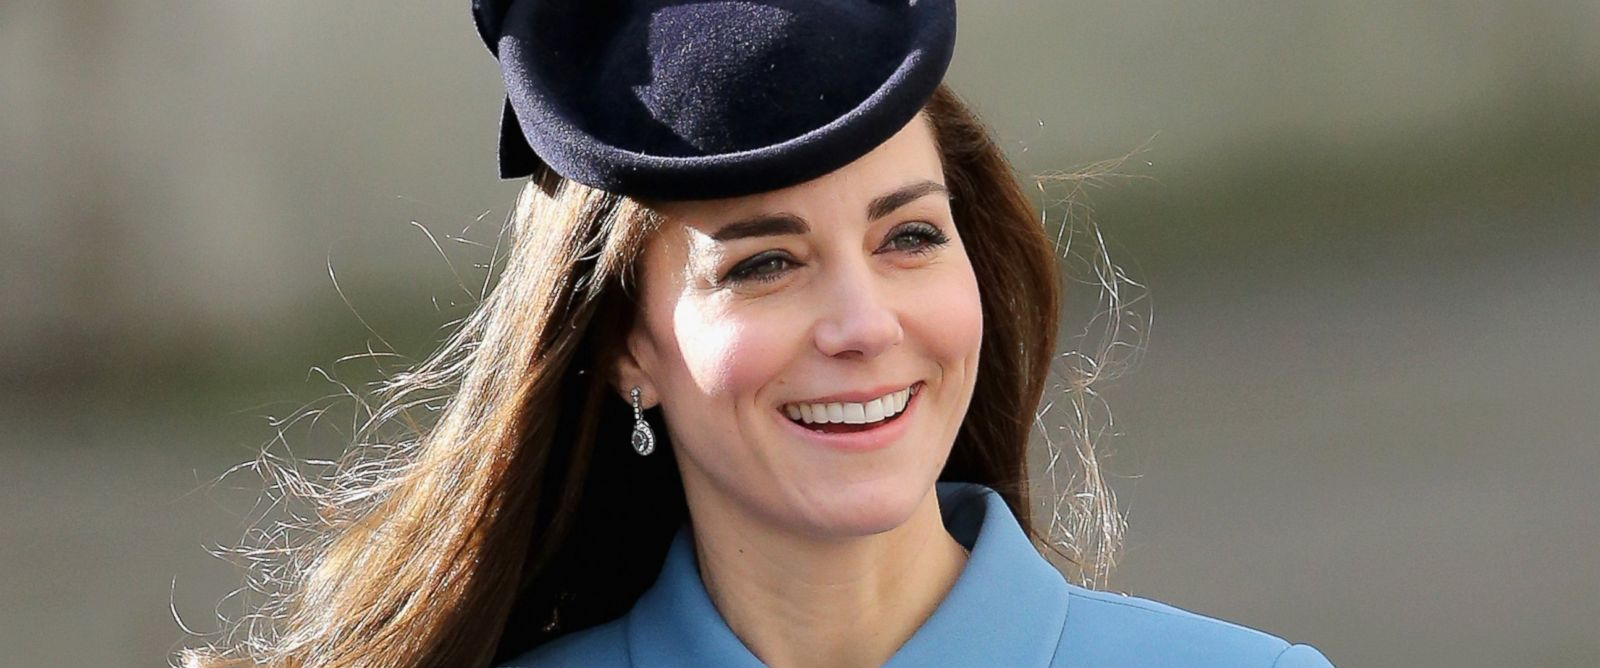 PHOTO: Catherine, Duchess of Cambridge attends the 75th Anniversary of the RAF Air Cadets at St Clement Danes Church on Feb. 7, 2016 in London.